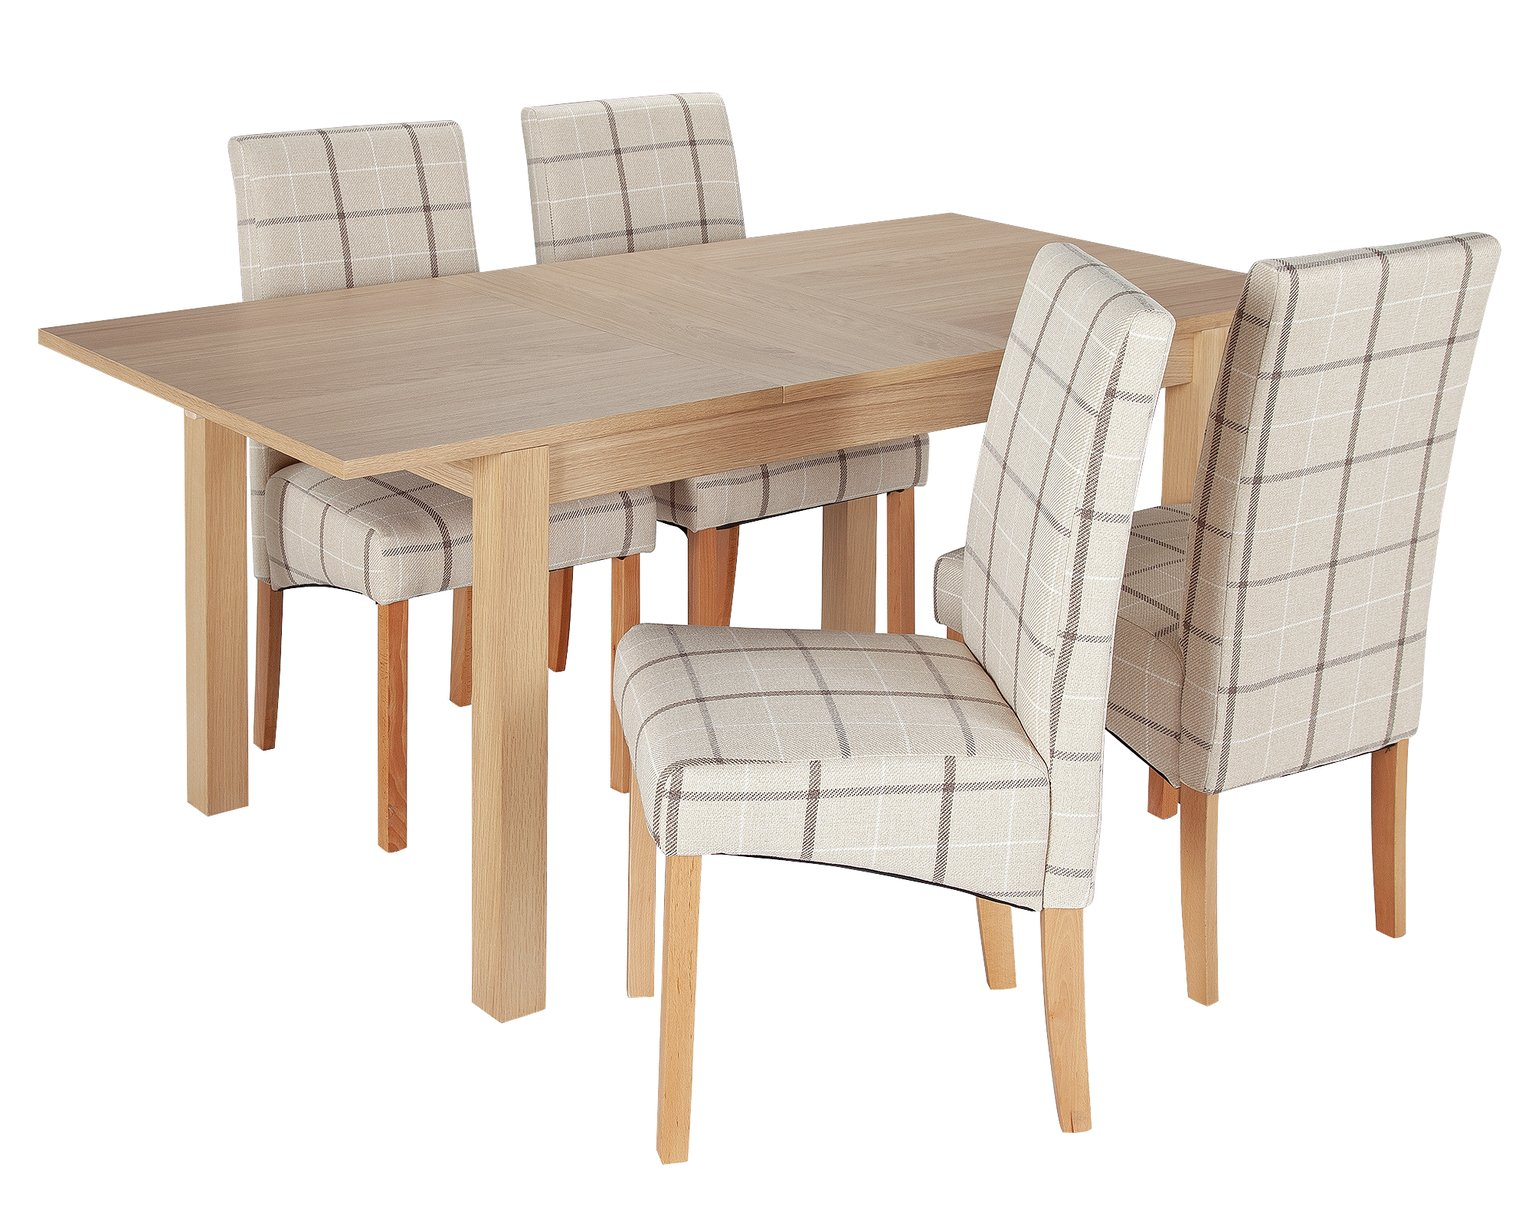 Argos Home Clifton Extendable Table & 4 Chairs review